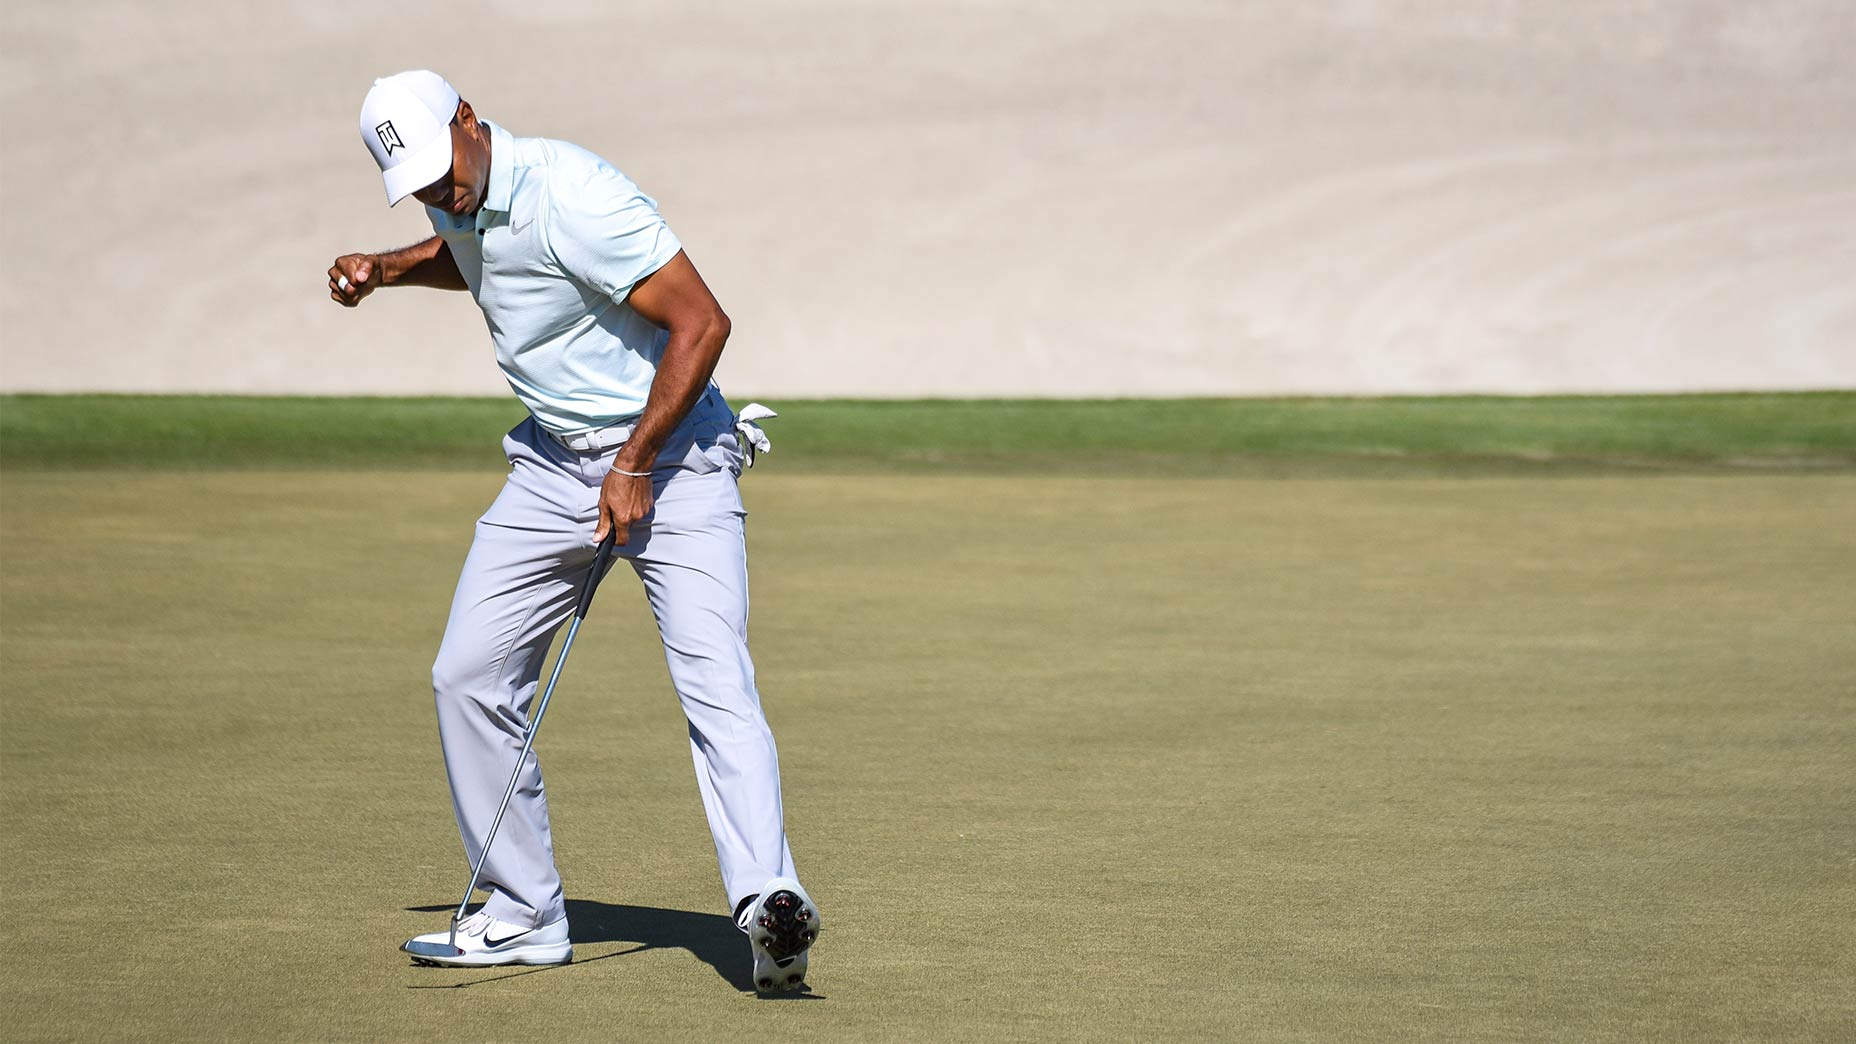 Tiger Woods pumps his first after making a putt.